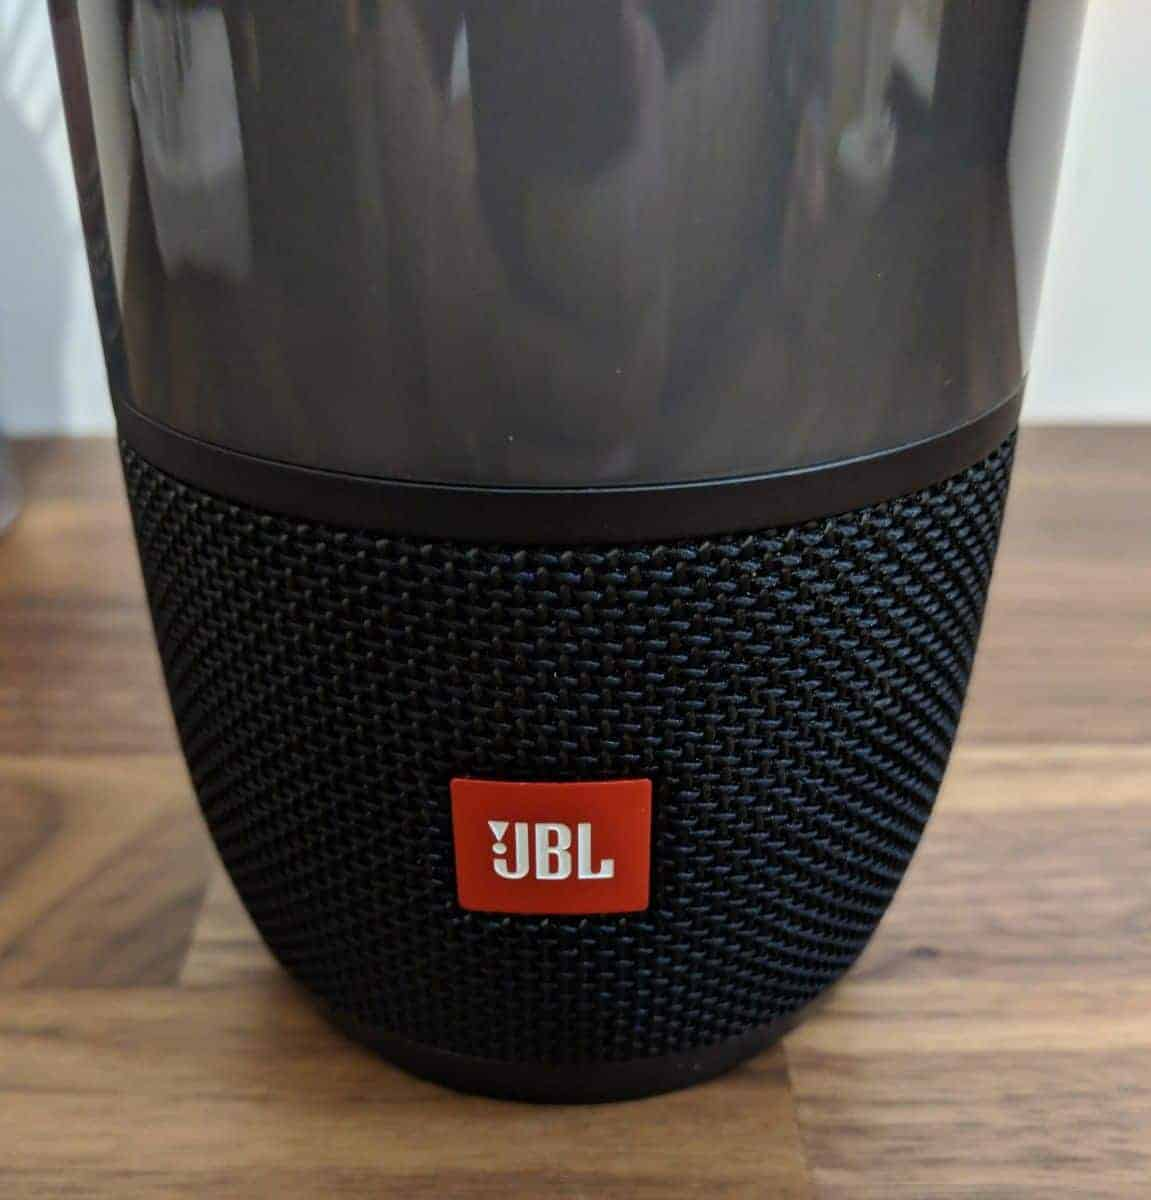 JBL-Pulse-3-Photos-05 JBL Pulse 3 Review